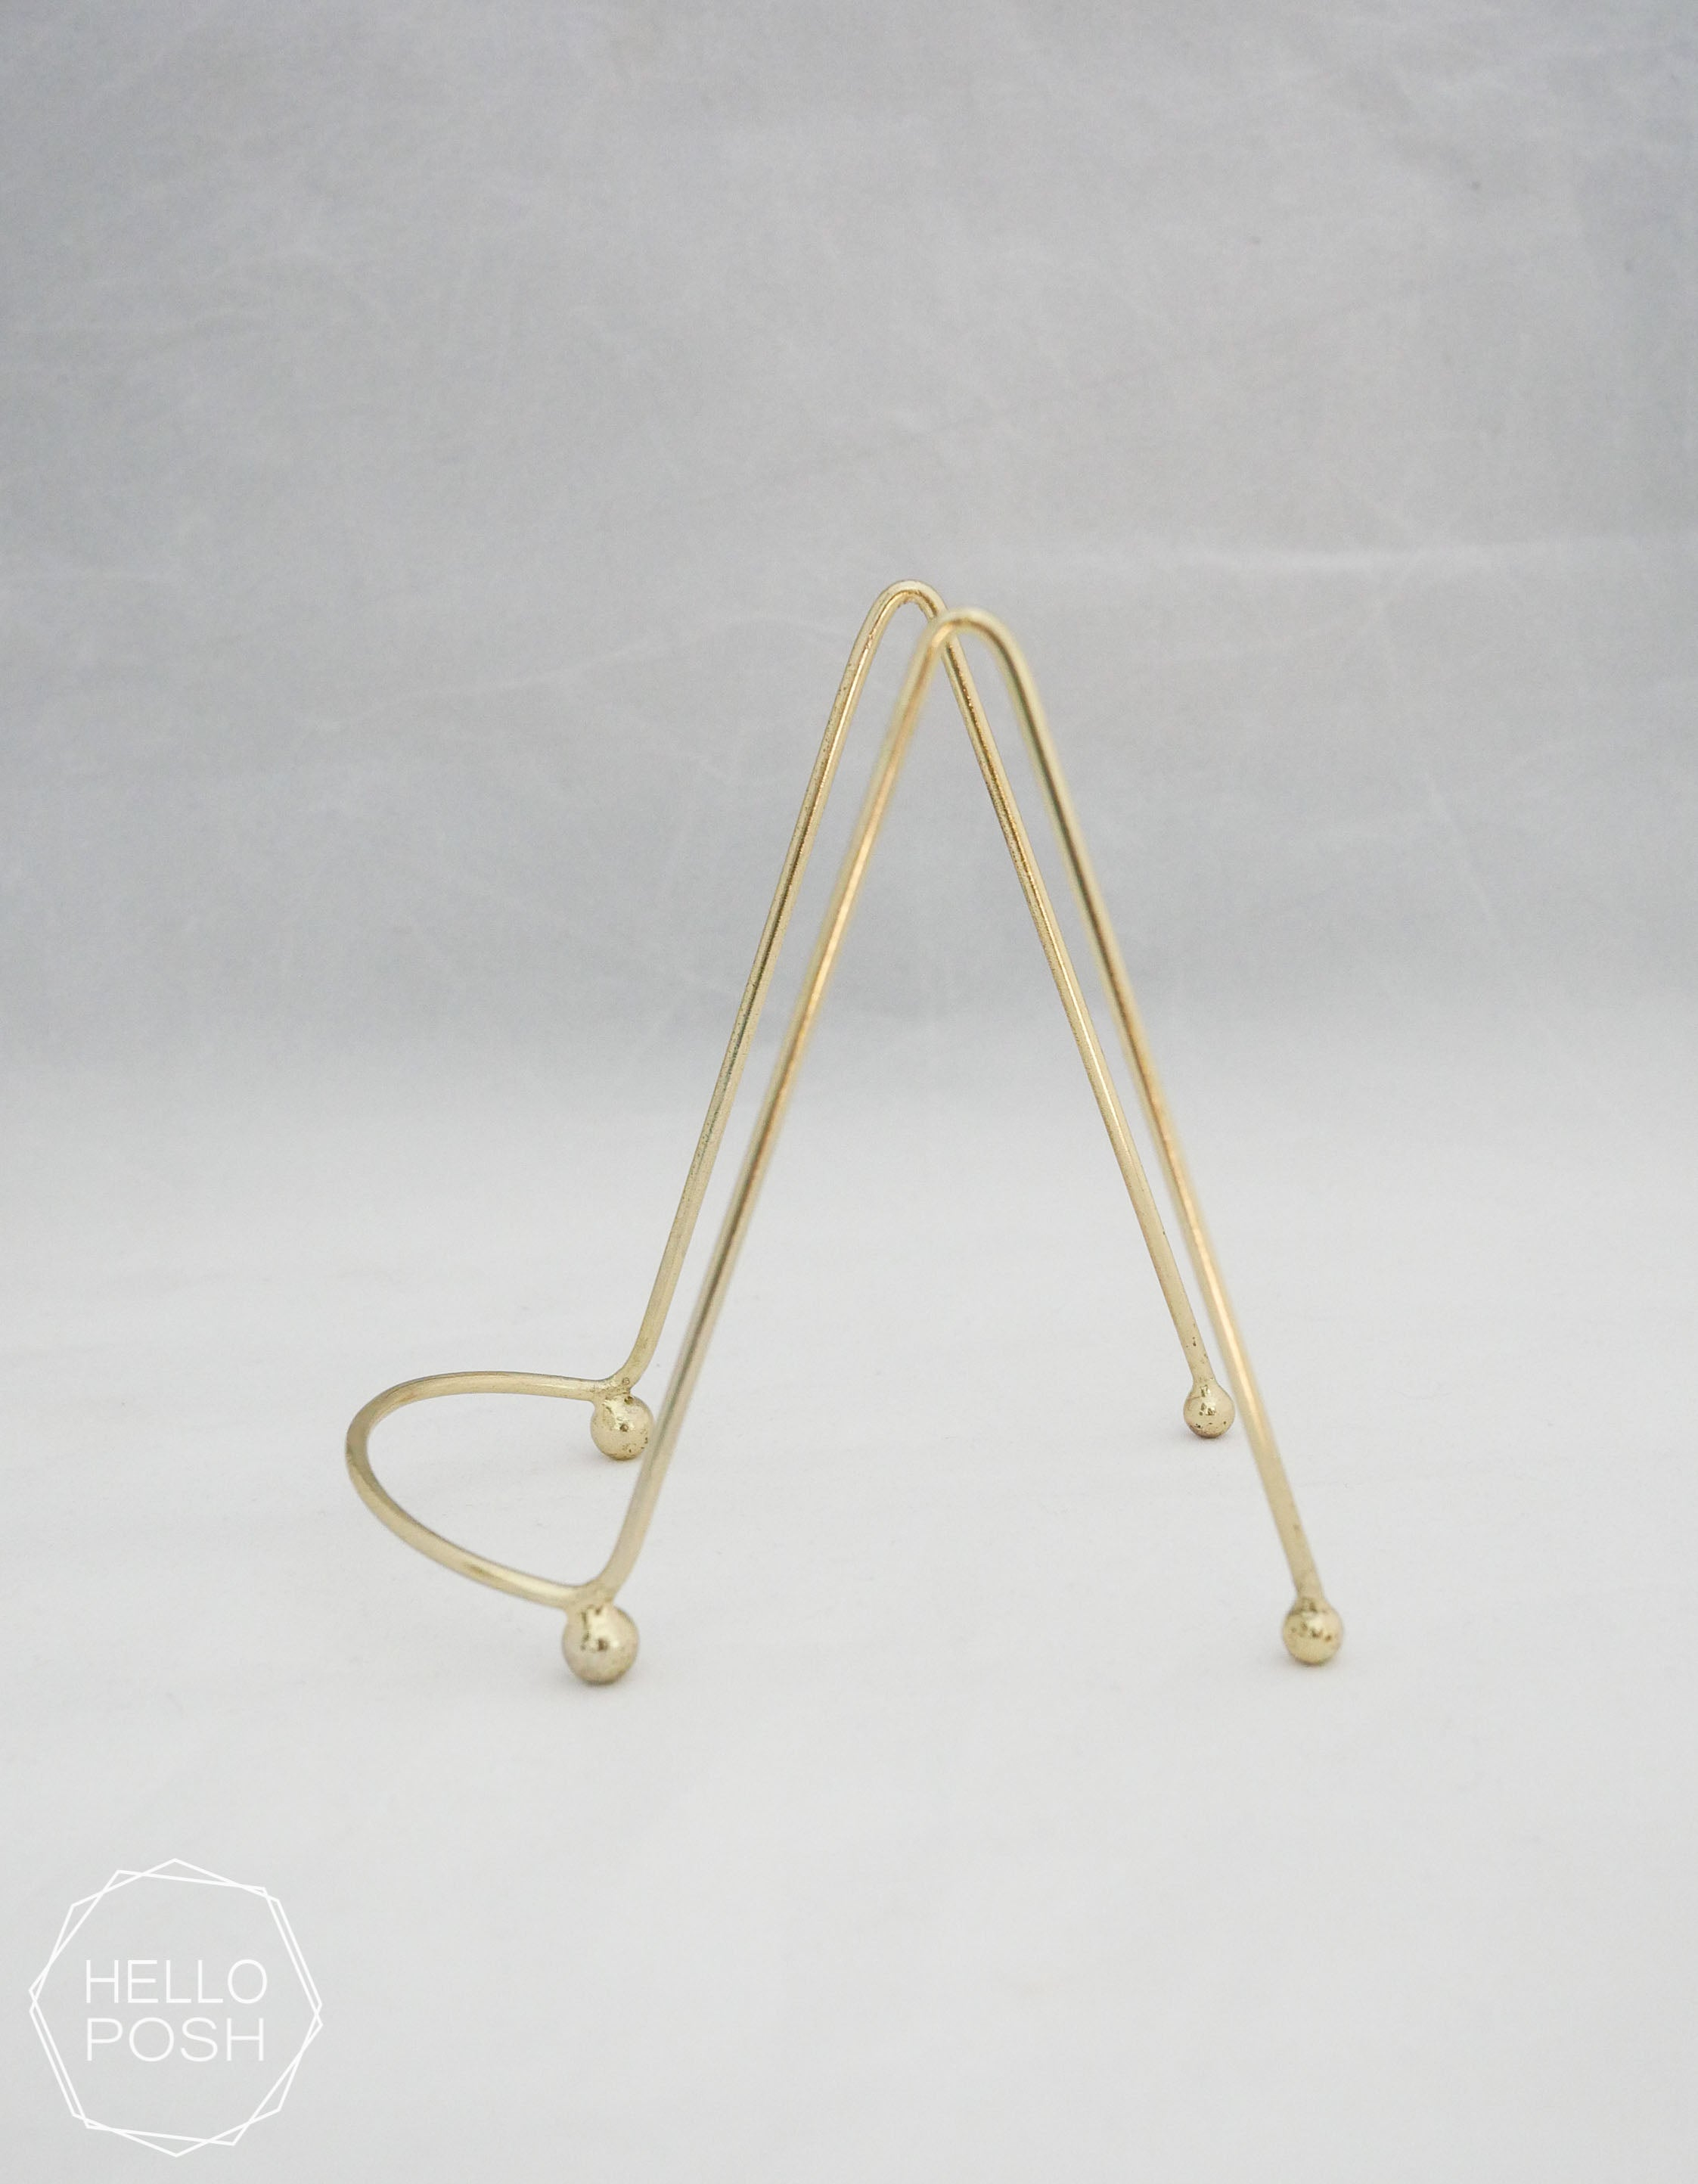 Small gold easels; Brass display stands